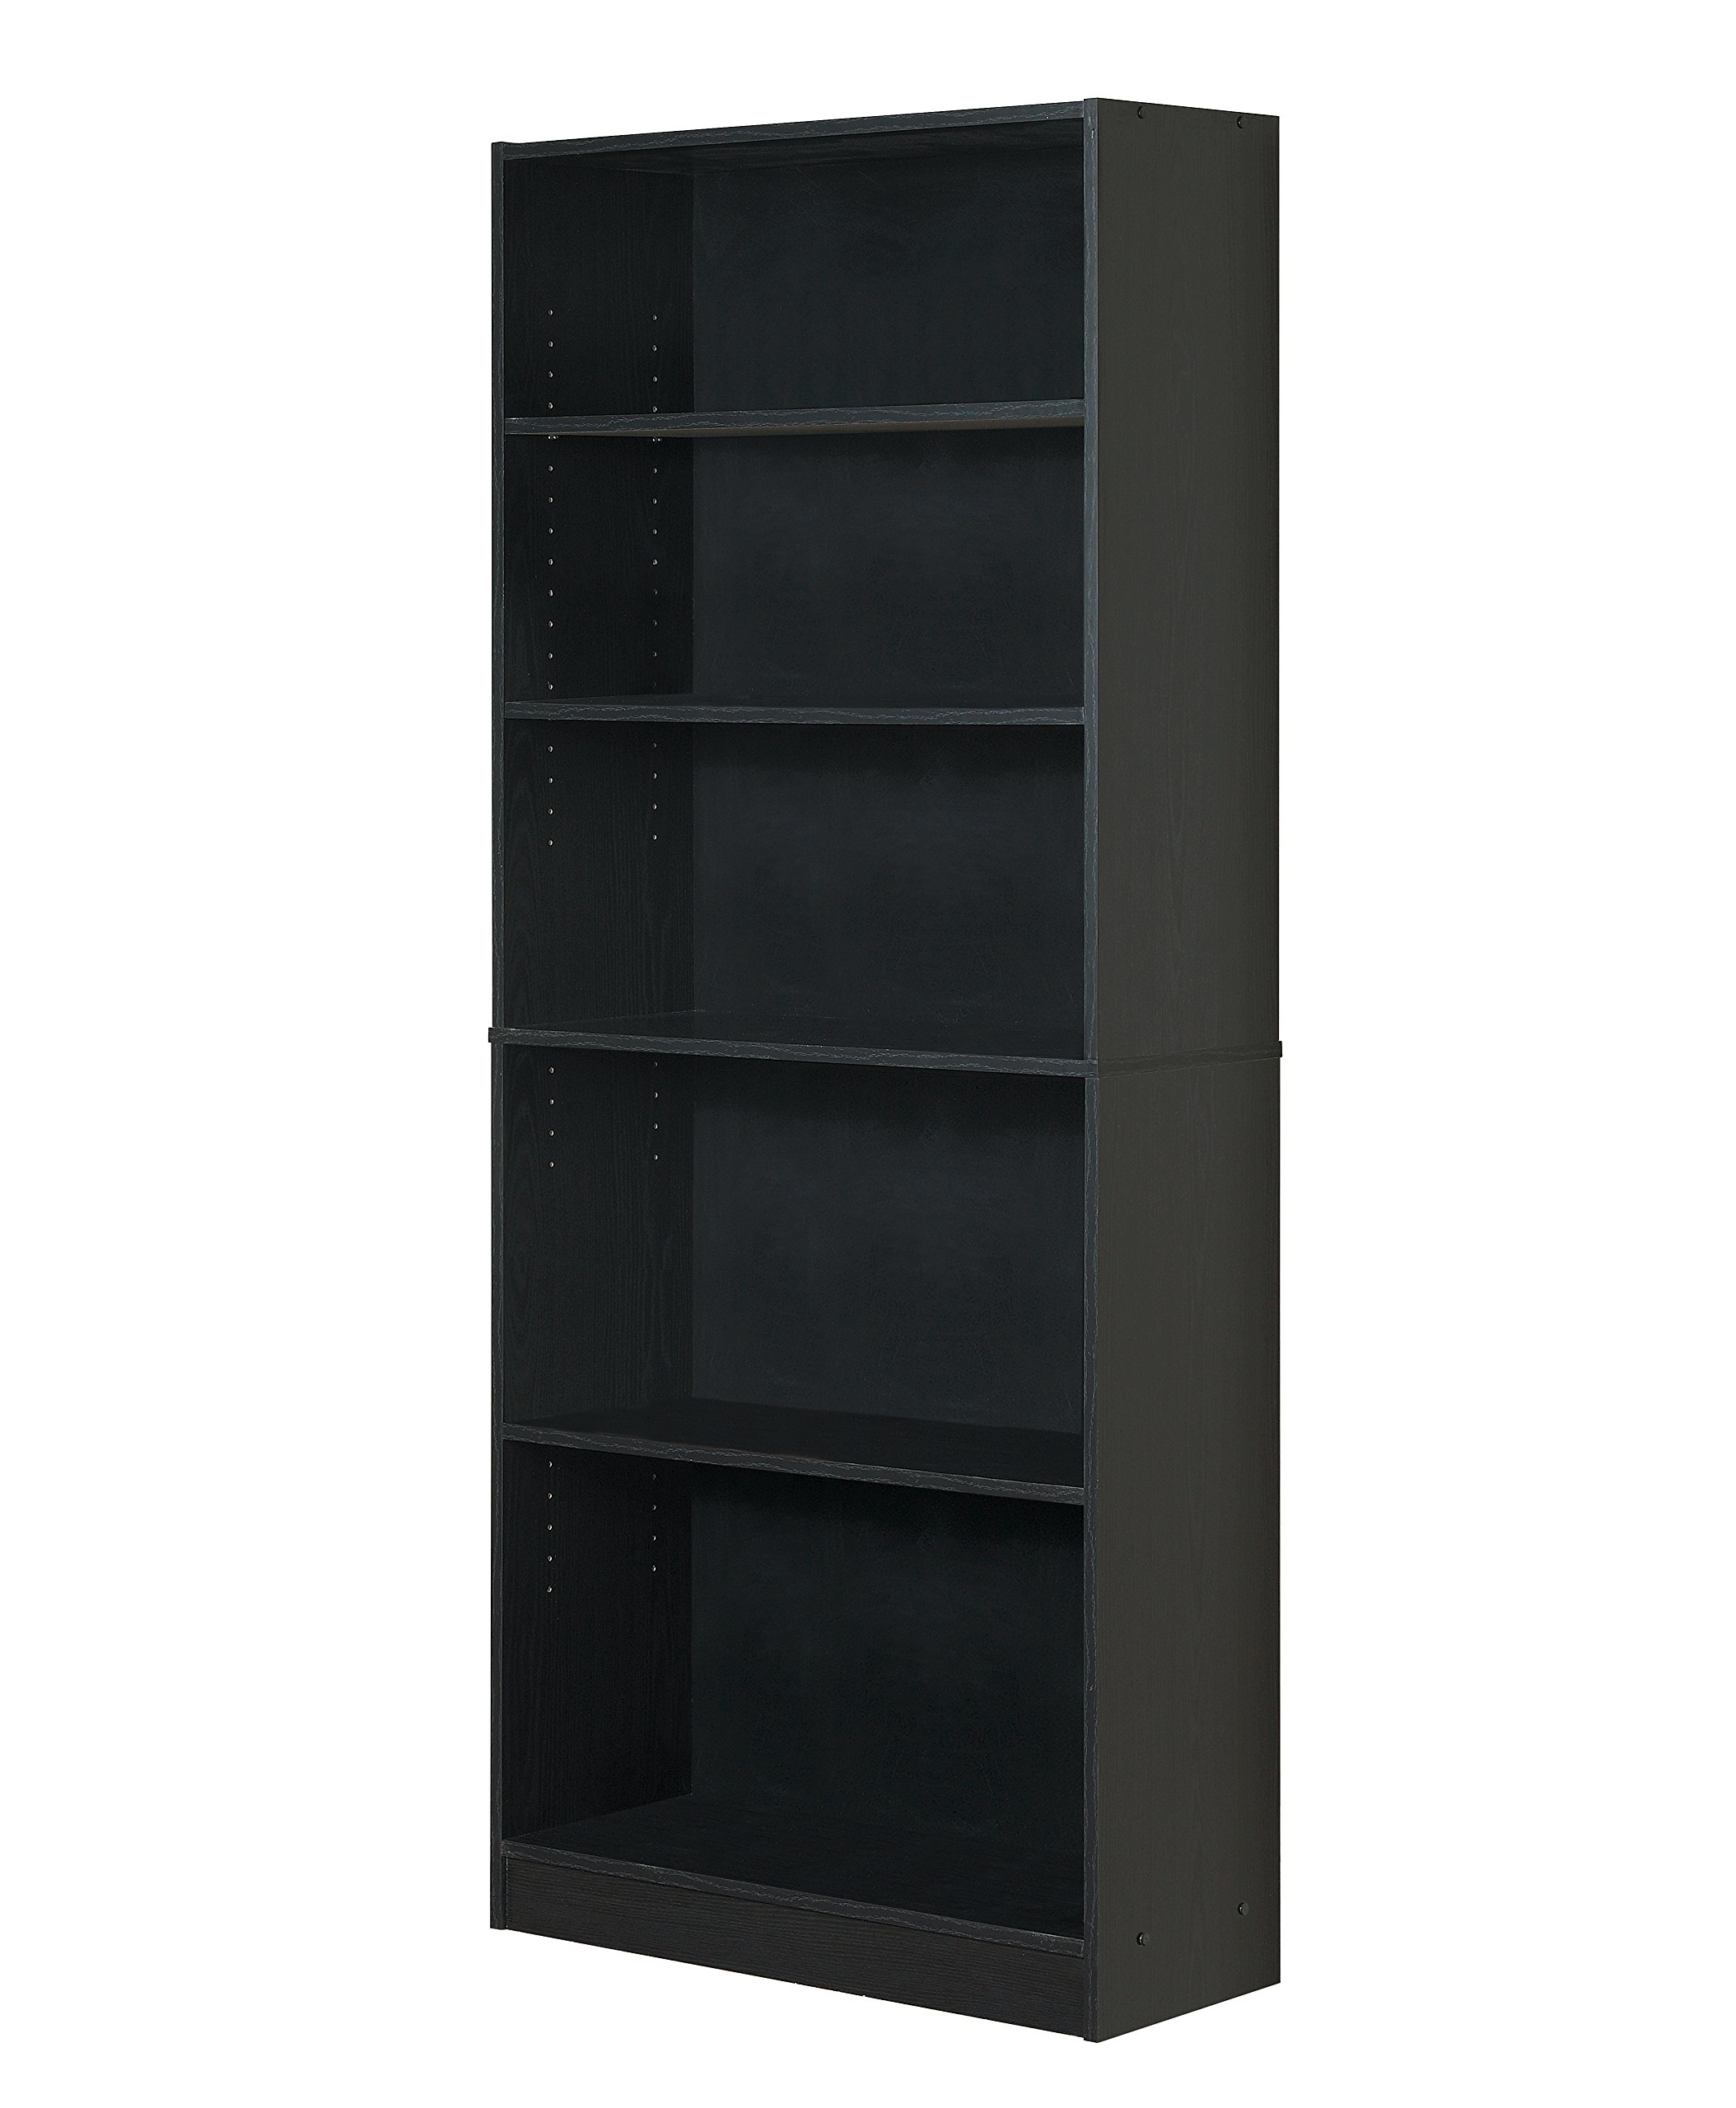 Mylex Five Shelf Bookcase; Three Adjustable Shelves; 11.63 x 29.63 x 71.5 Inches, Black, Assembly Required (43074)